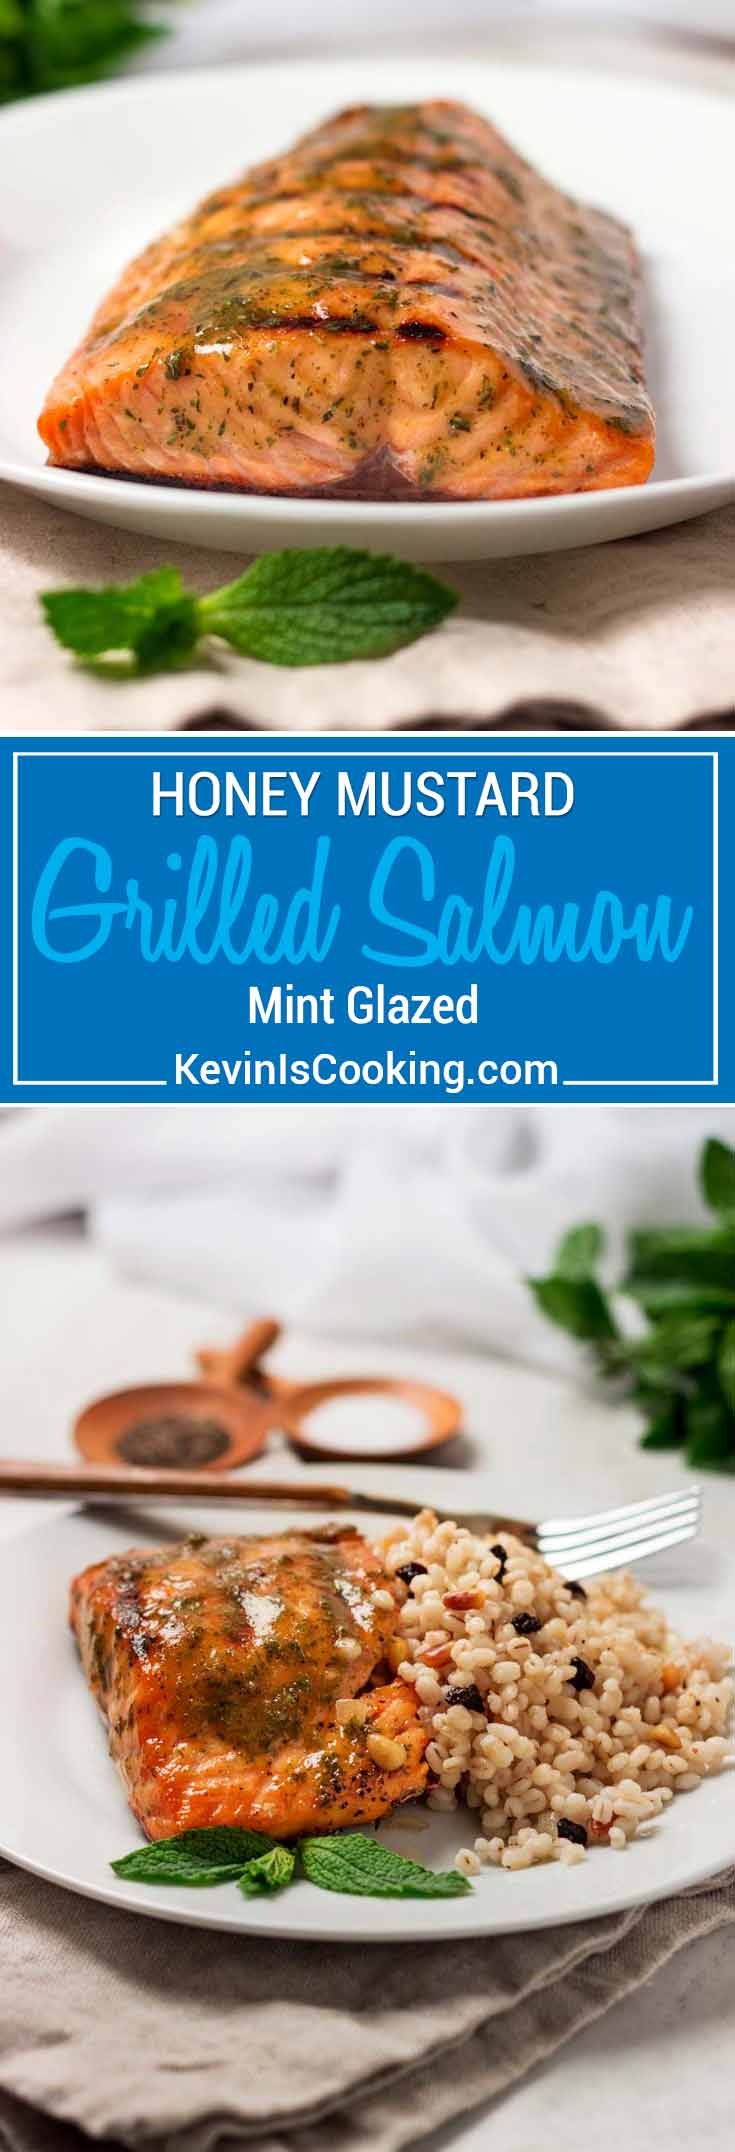 For this Honey Mustard Grilled Salmon, brush on this simple yet flavorful sauce of honey, mustard, mint and horseradish for a little kick after grilling.